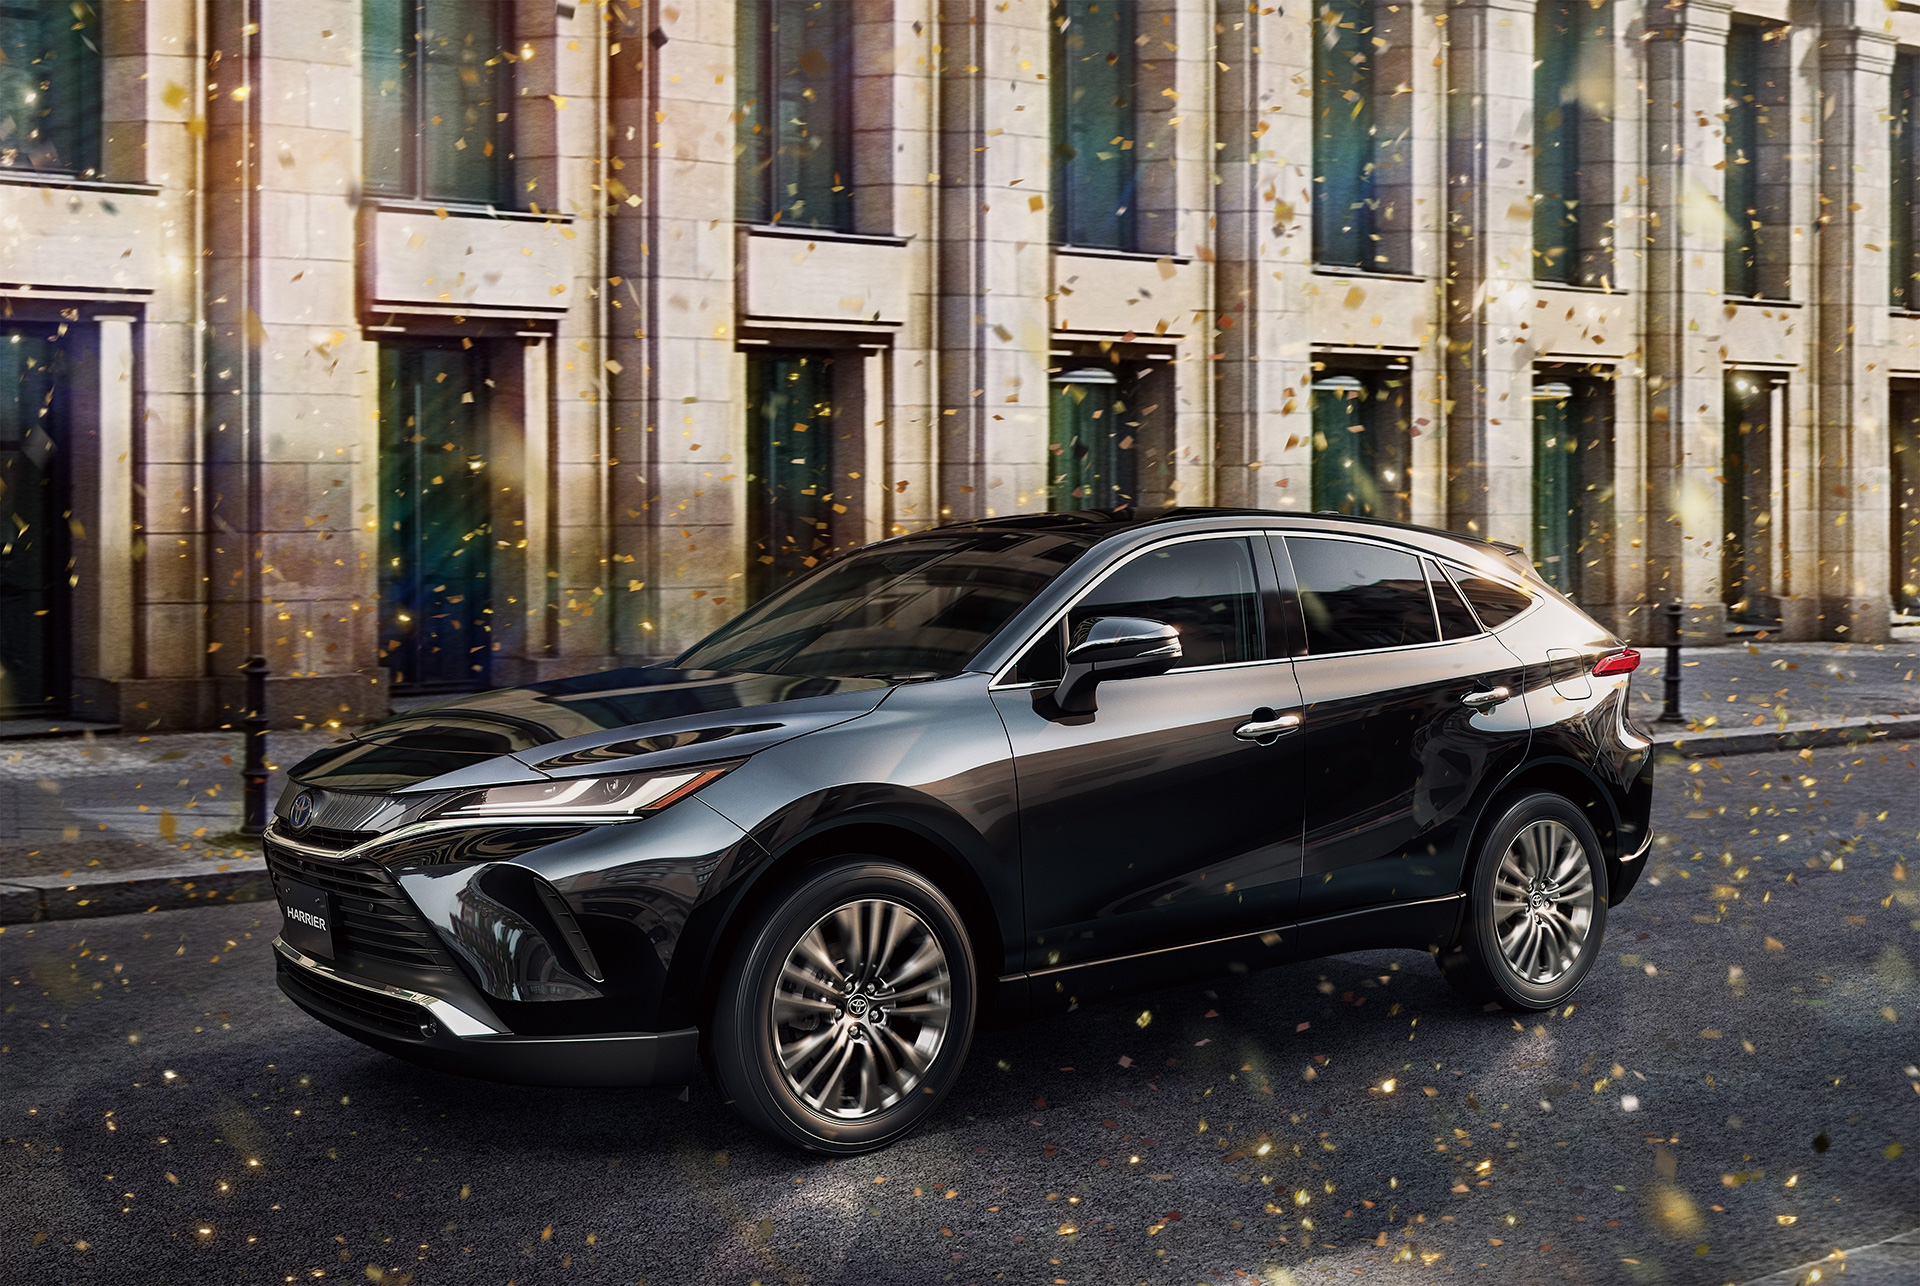 Toyota Launches New Model Harrier in Japan - Image 8